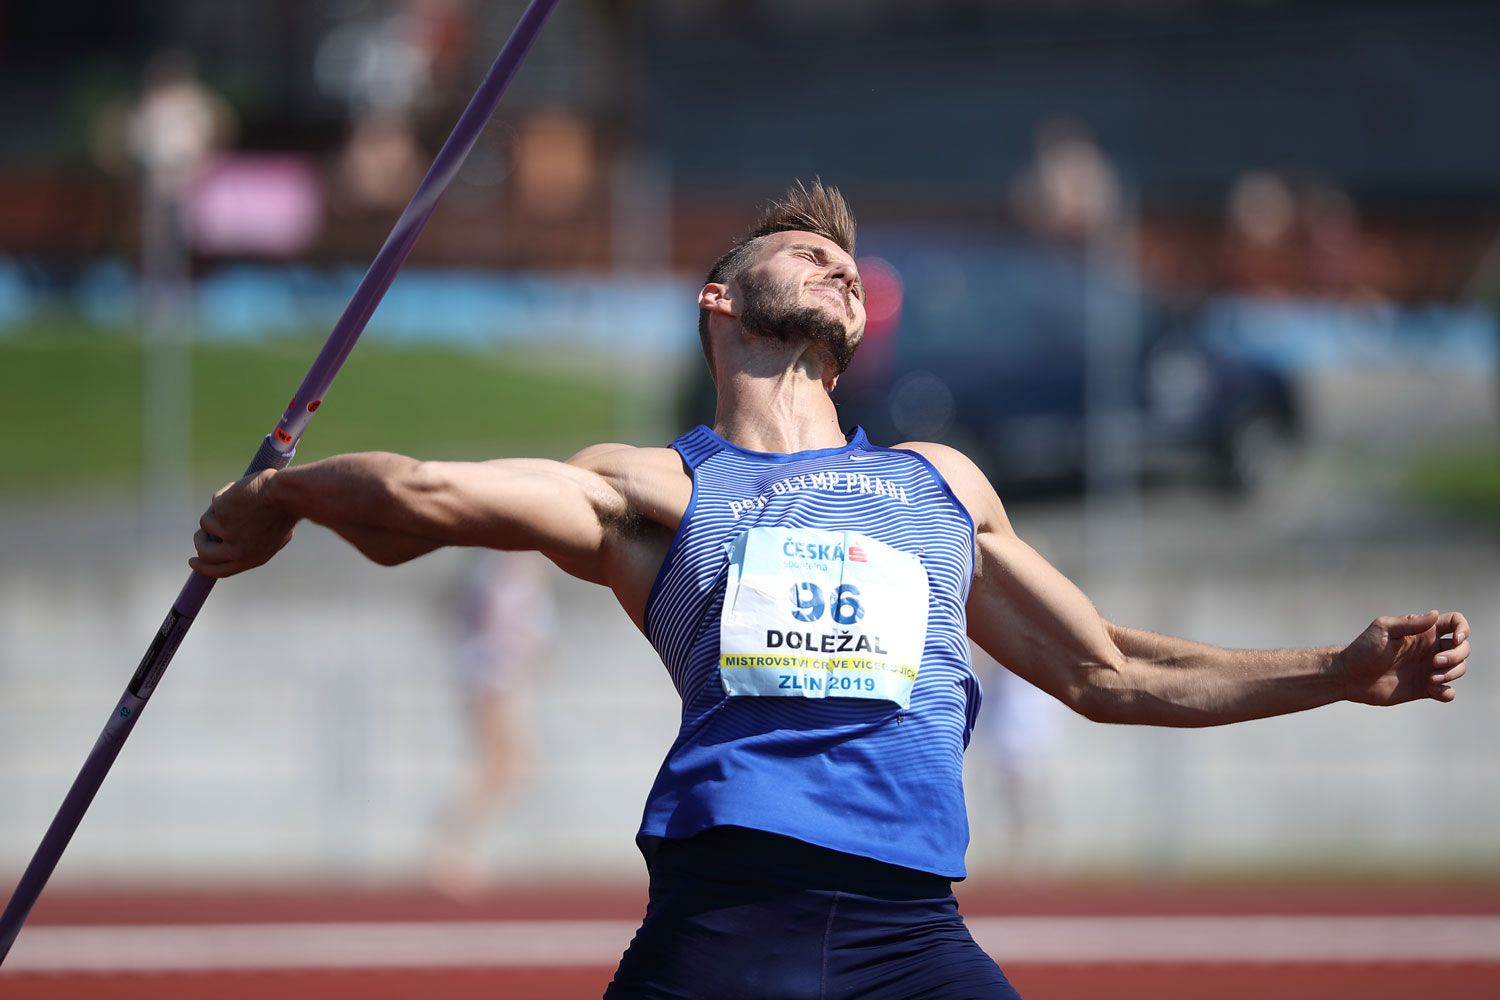 CZ Championship Combined Events Zlin Sunday 28